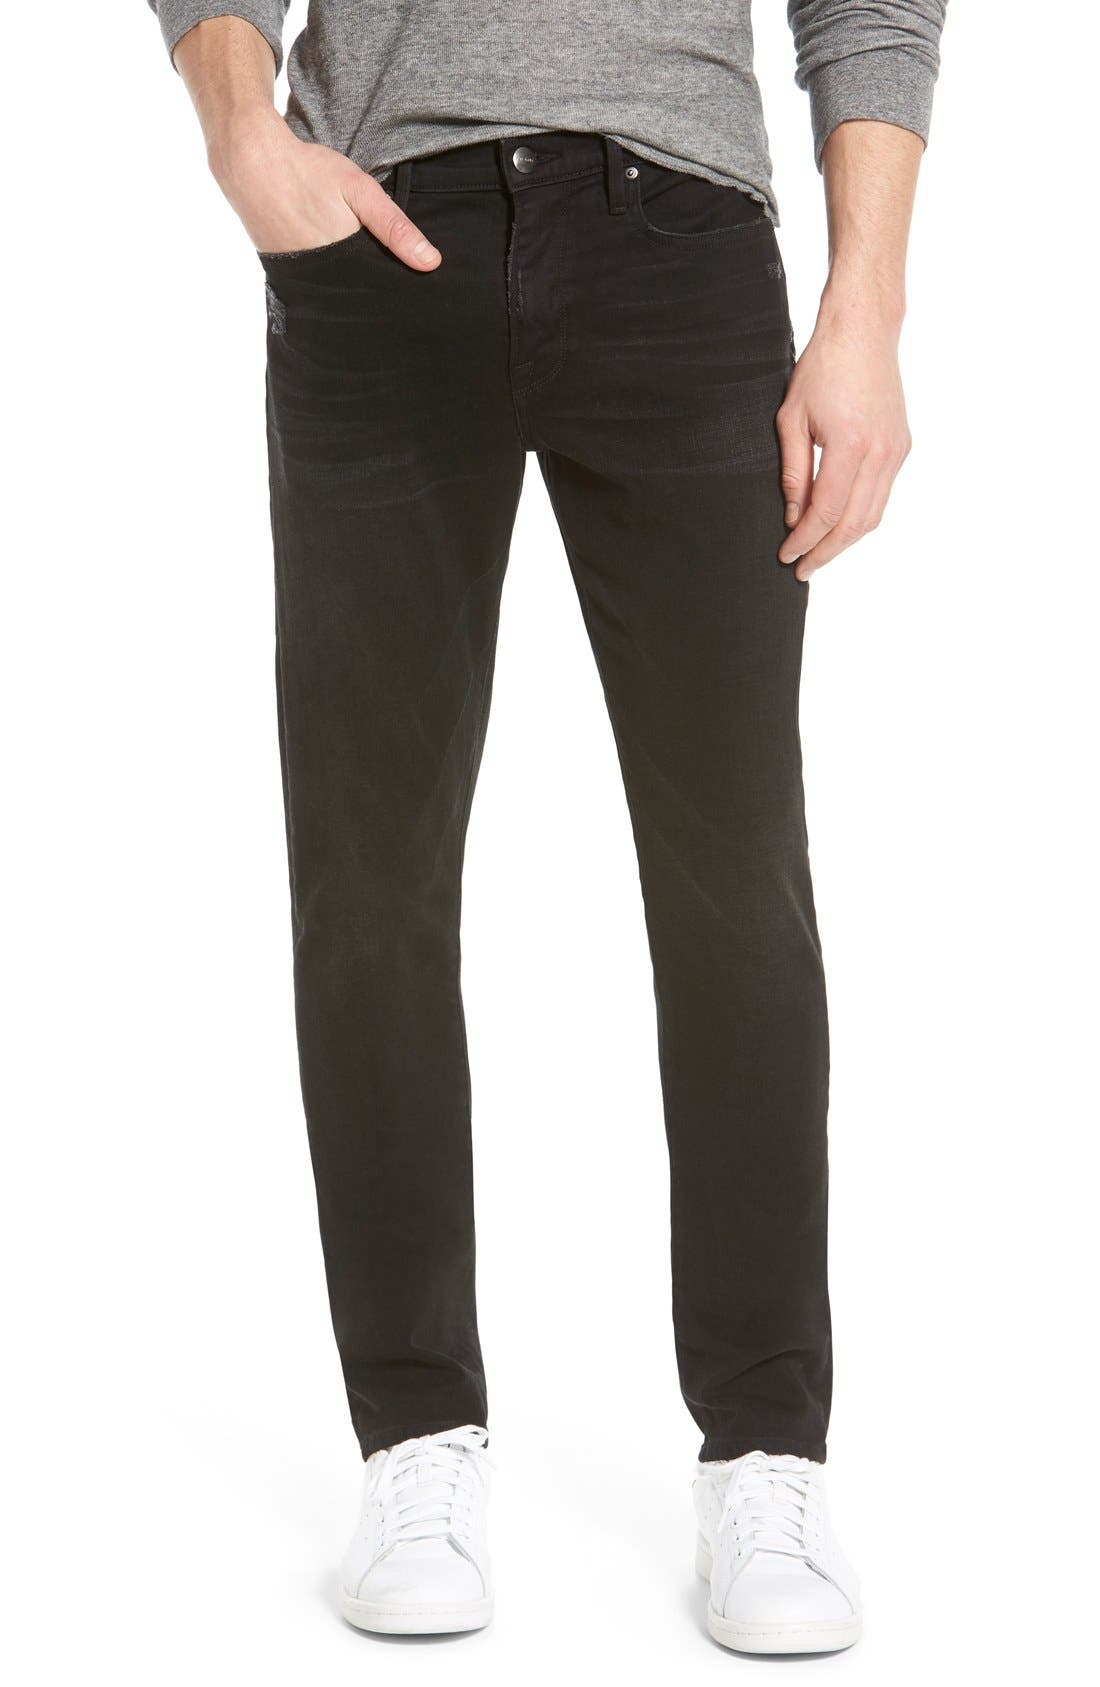 'L'Homme' Slim Fit Jeans,                         Main,                         color, Chimney Rock